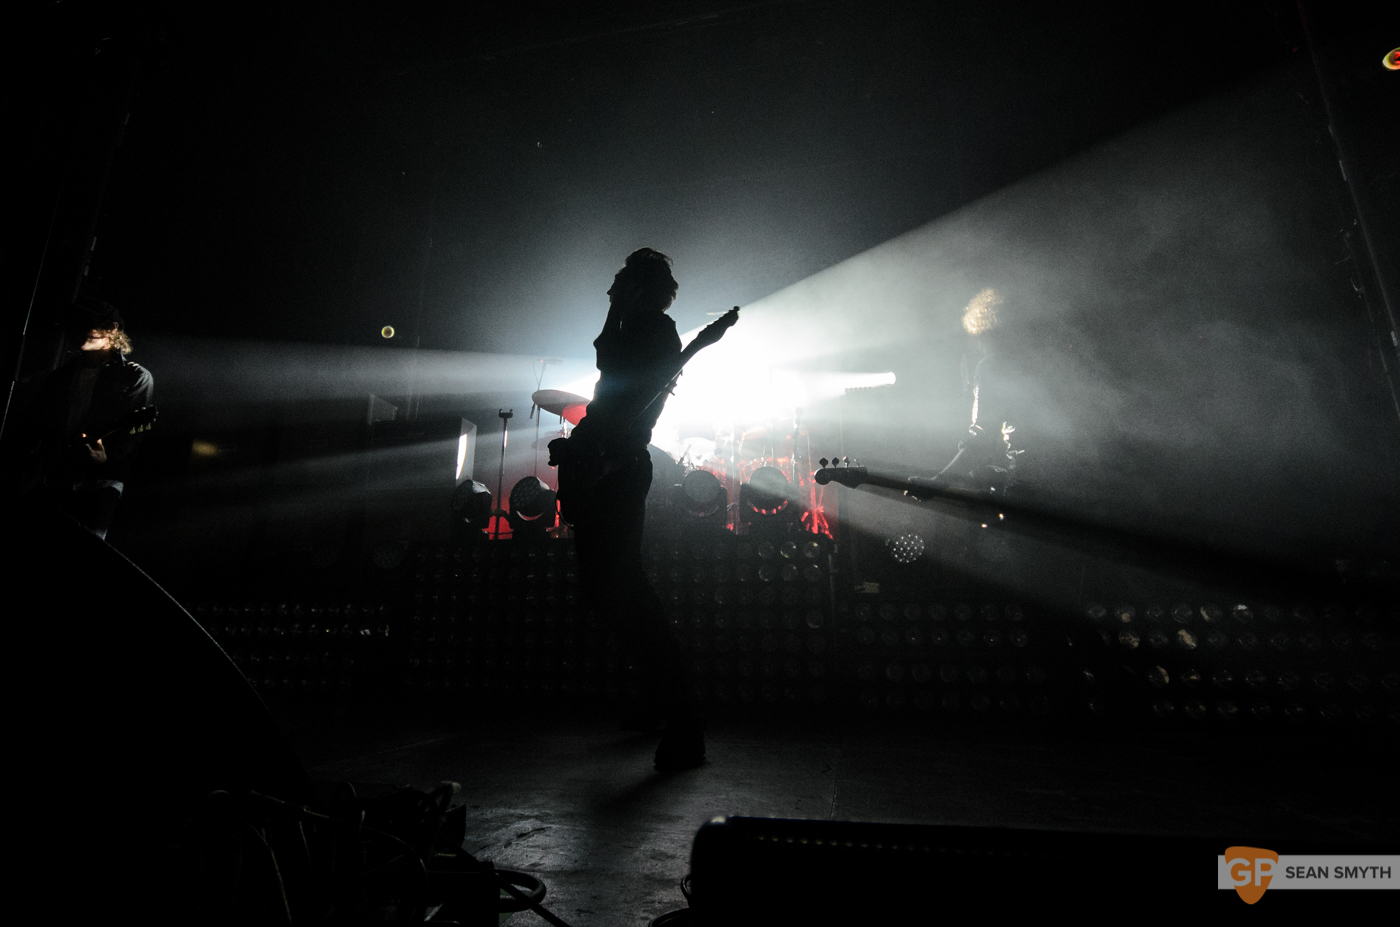 catfish-and-the-bottlemen-at-the-olympia-theatre-by-sean-smyth-20-11-16-6-of-27